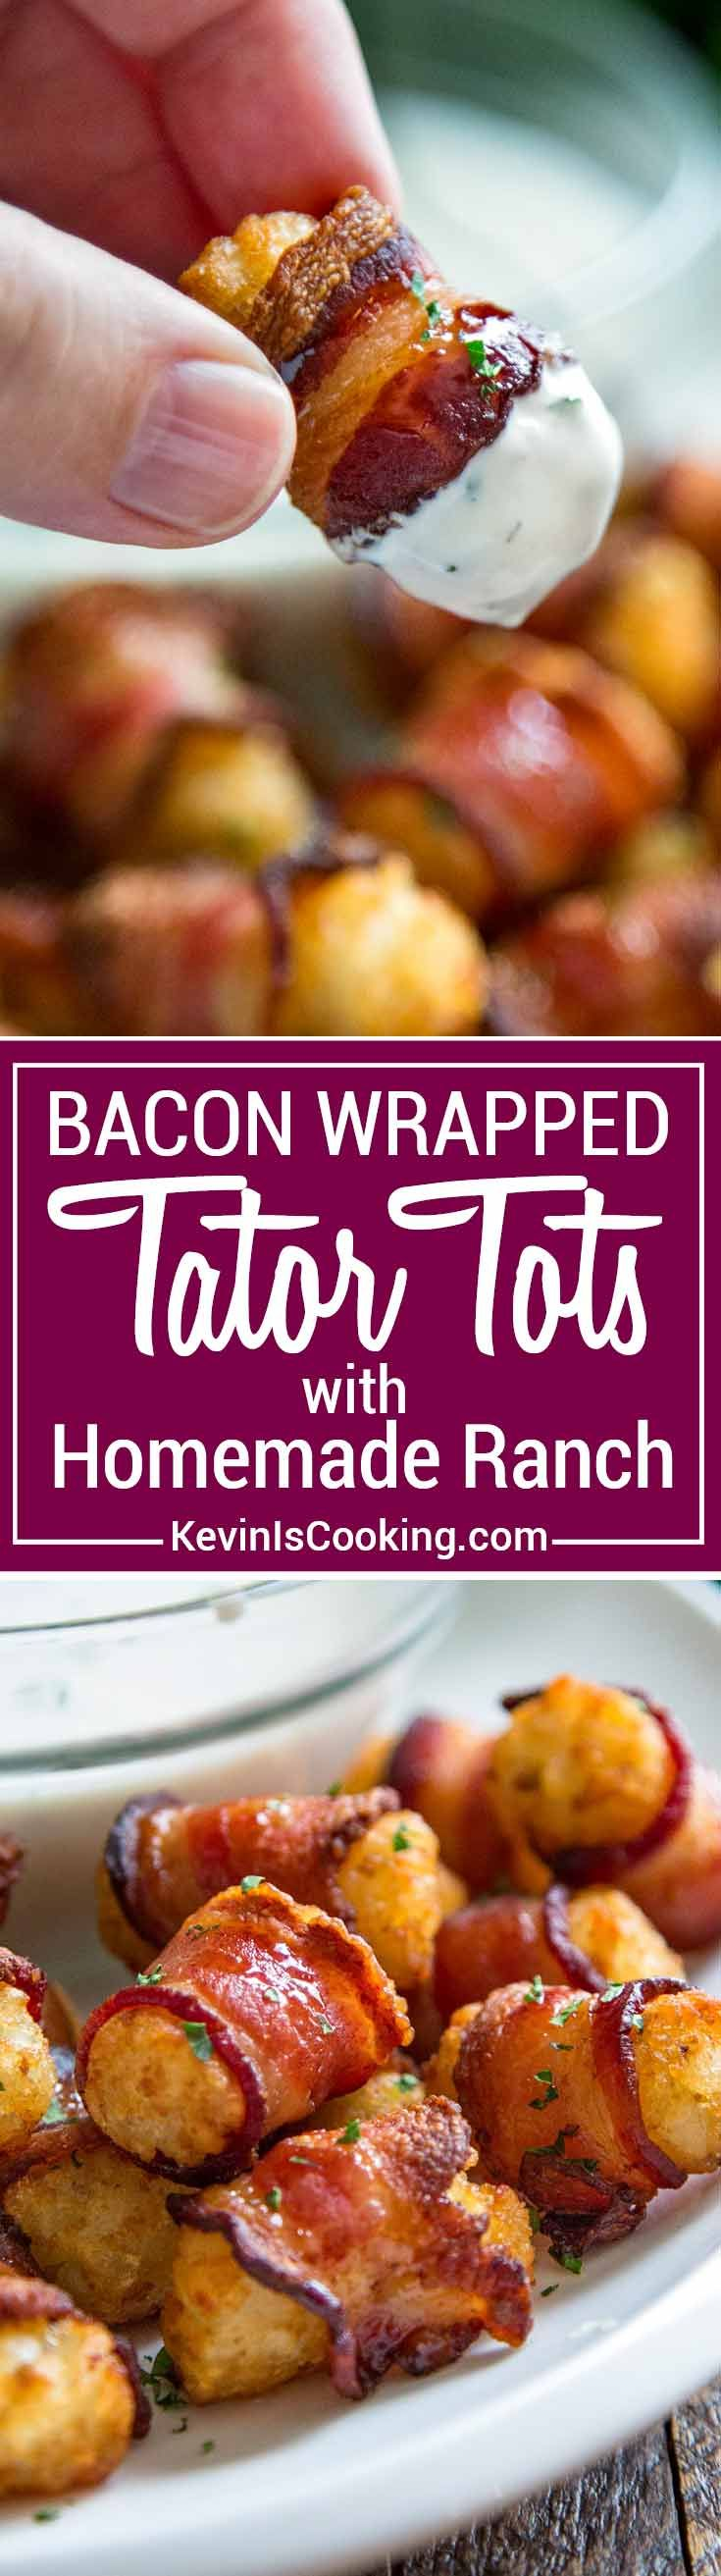 Bacon Wrapped Tots, a classic flavor combo potato and bacon. Now wrap bacon around each tot and bake! Then serve with homemade ranch dressing for the win.